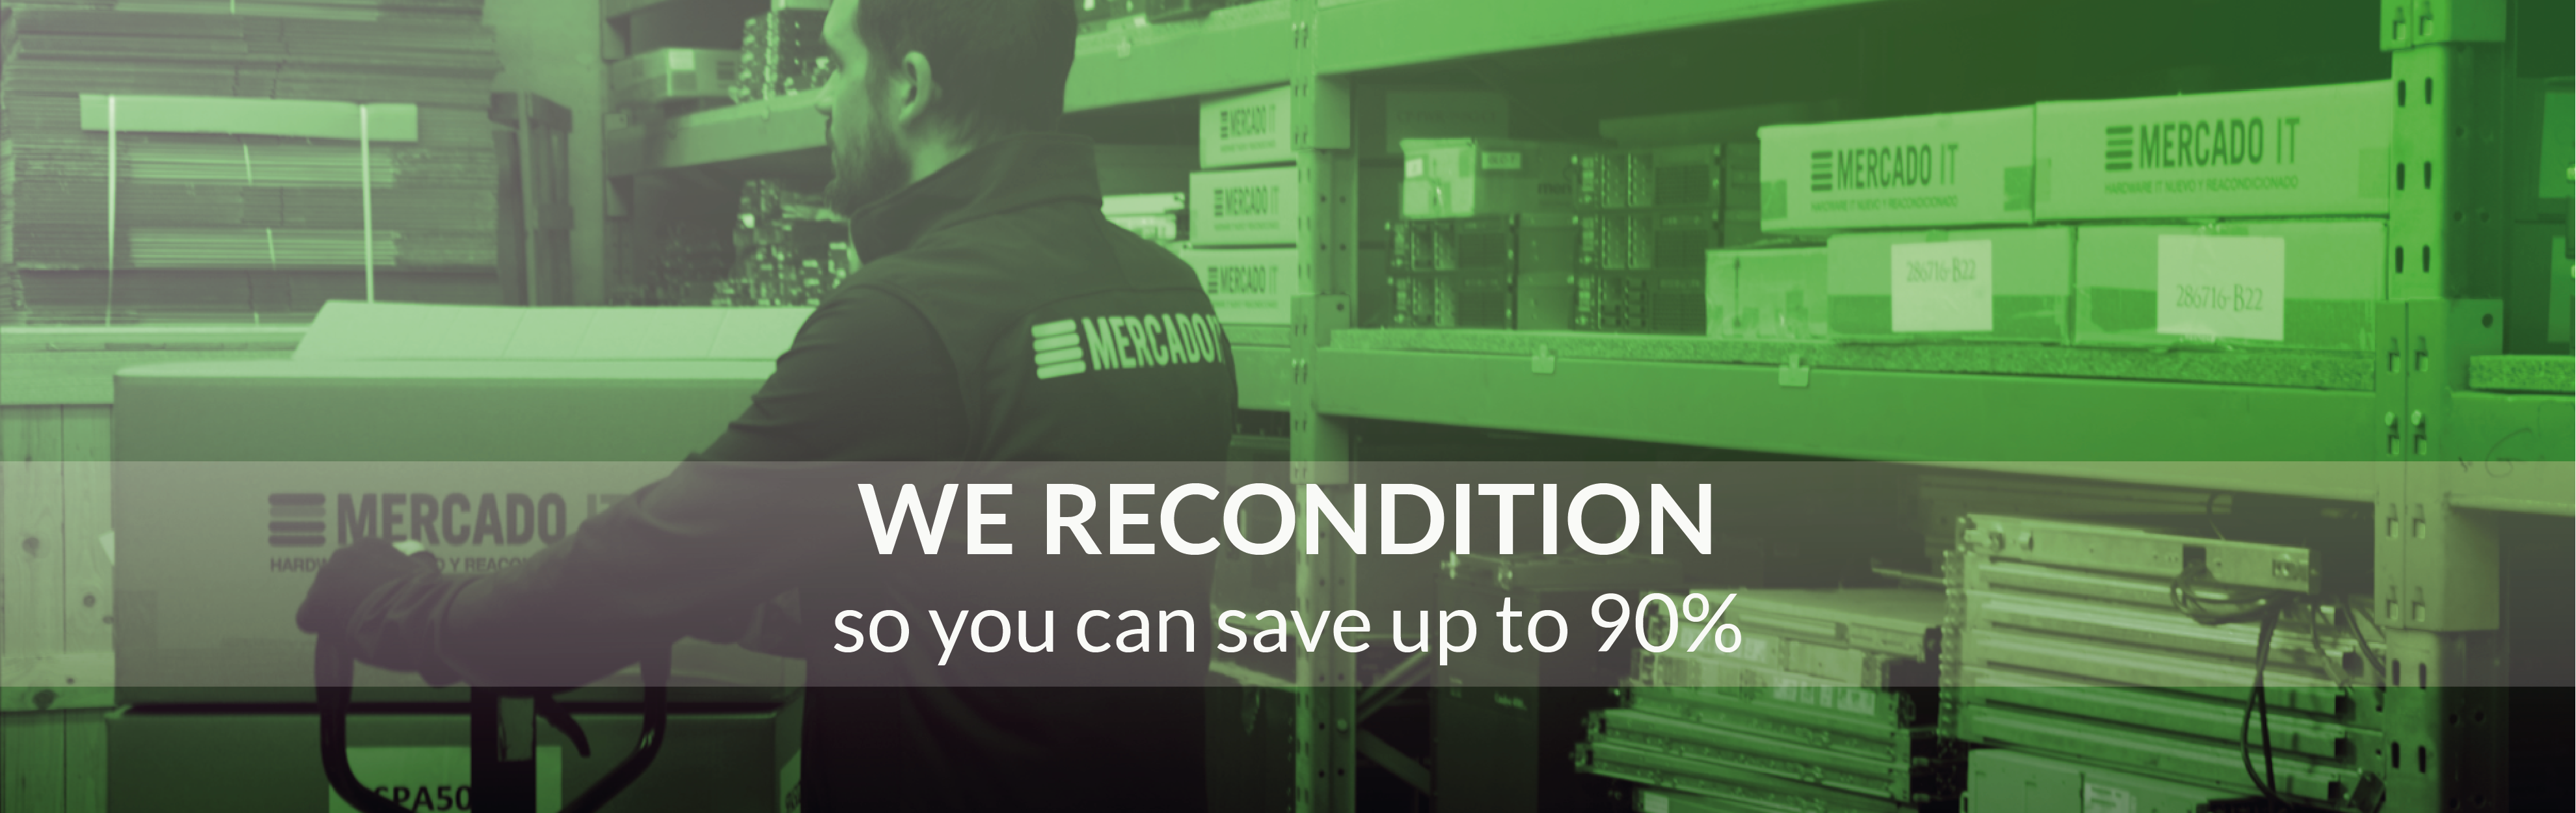 Recondition to save